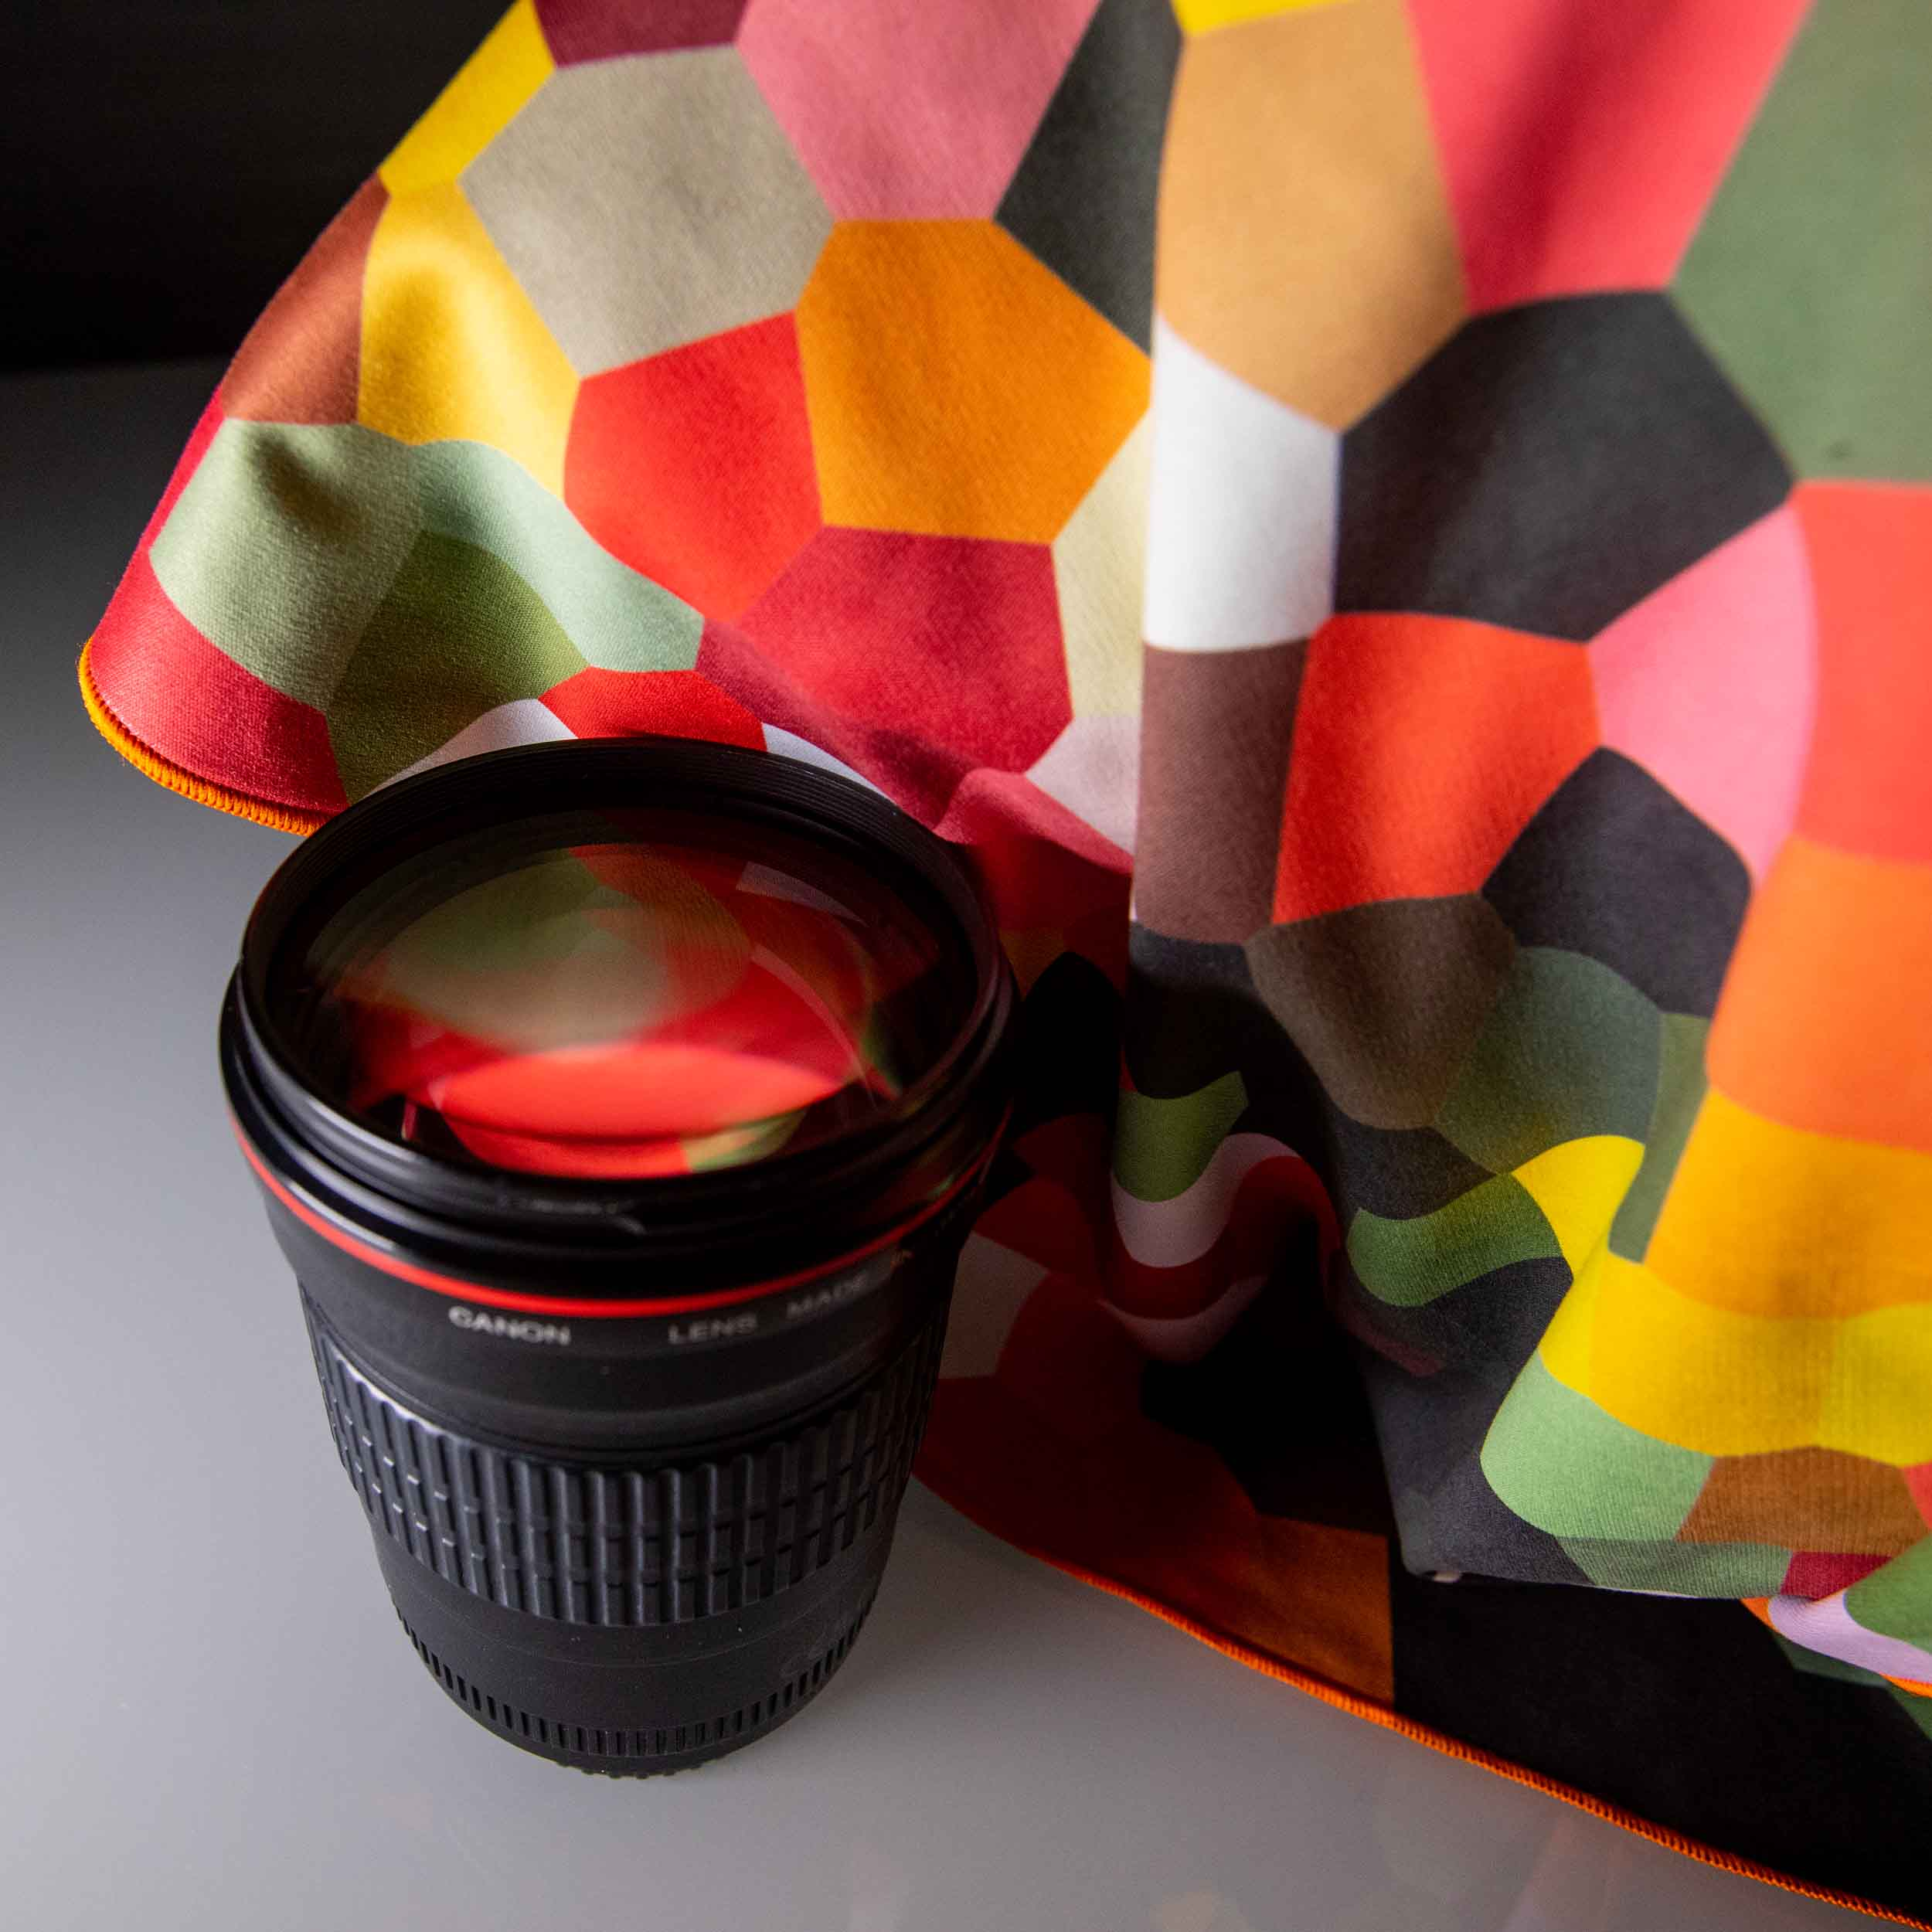 cleaning cloth for your camera lens